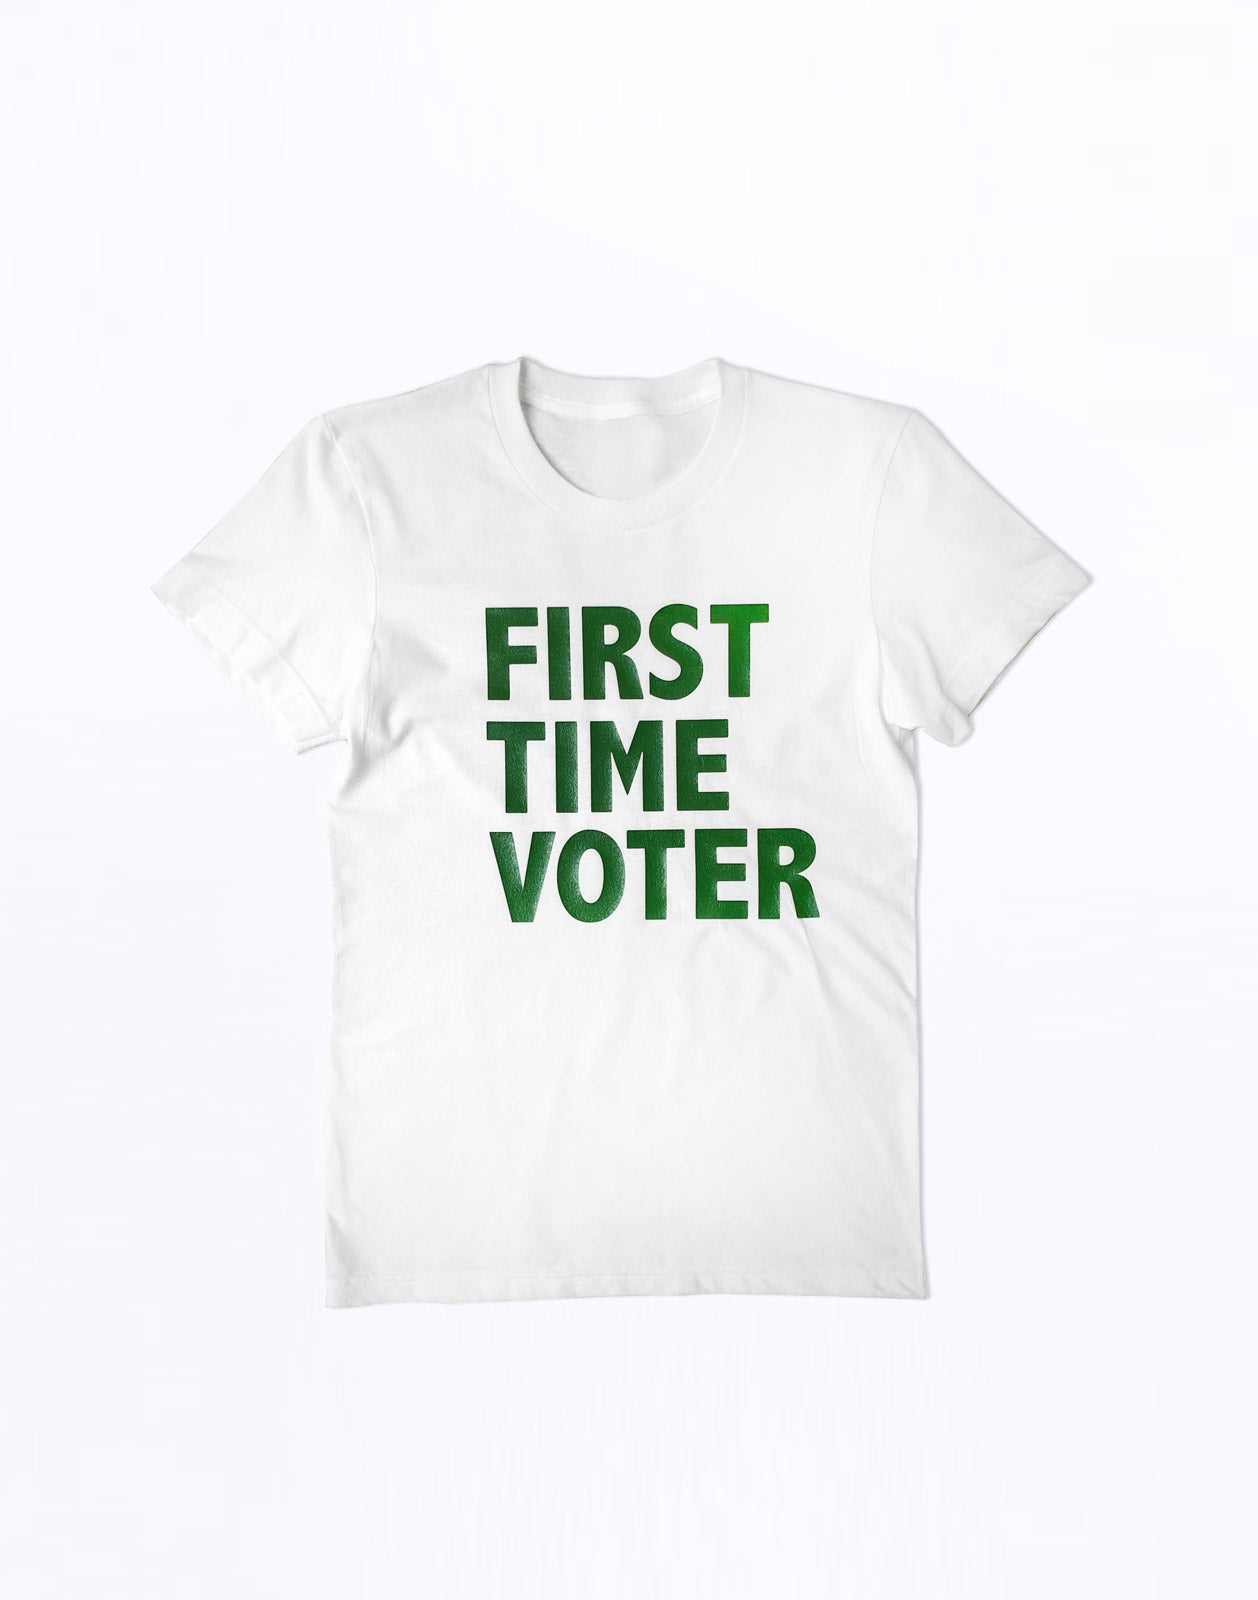 First Time Voter t-shirt with green lettering.